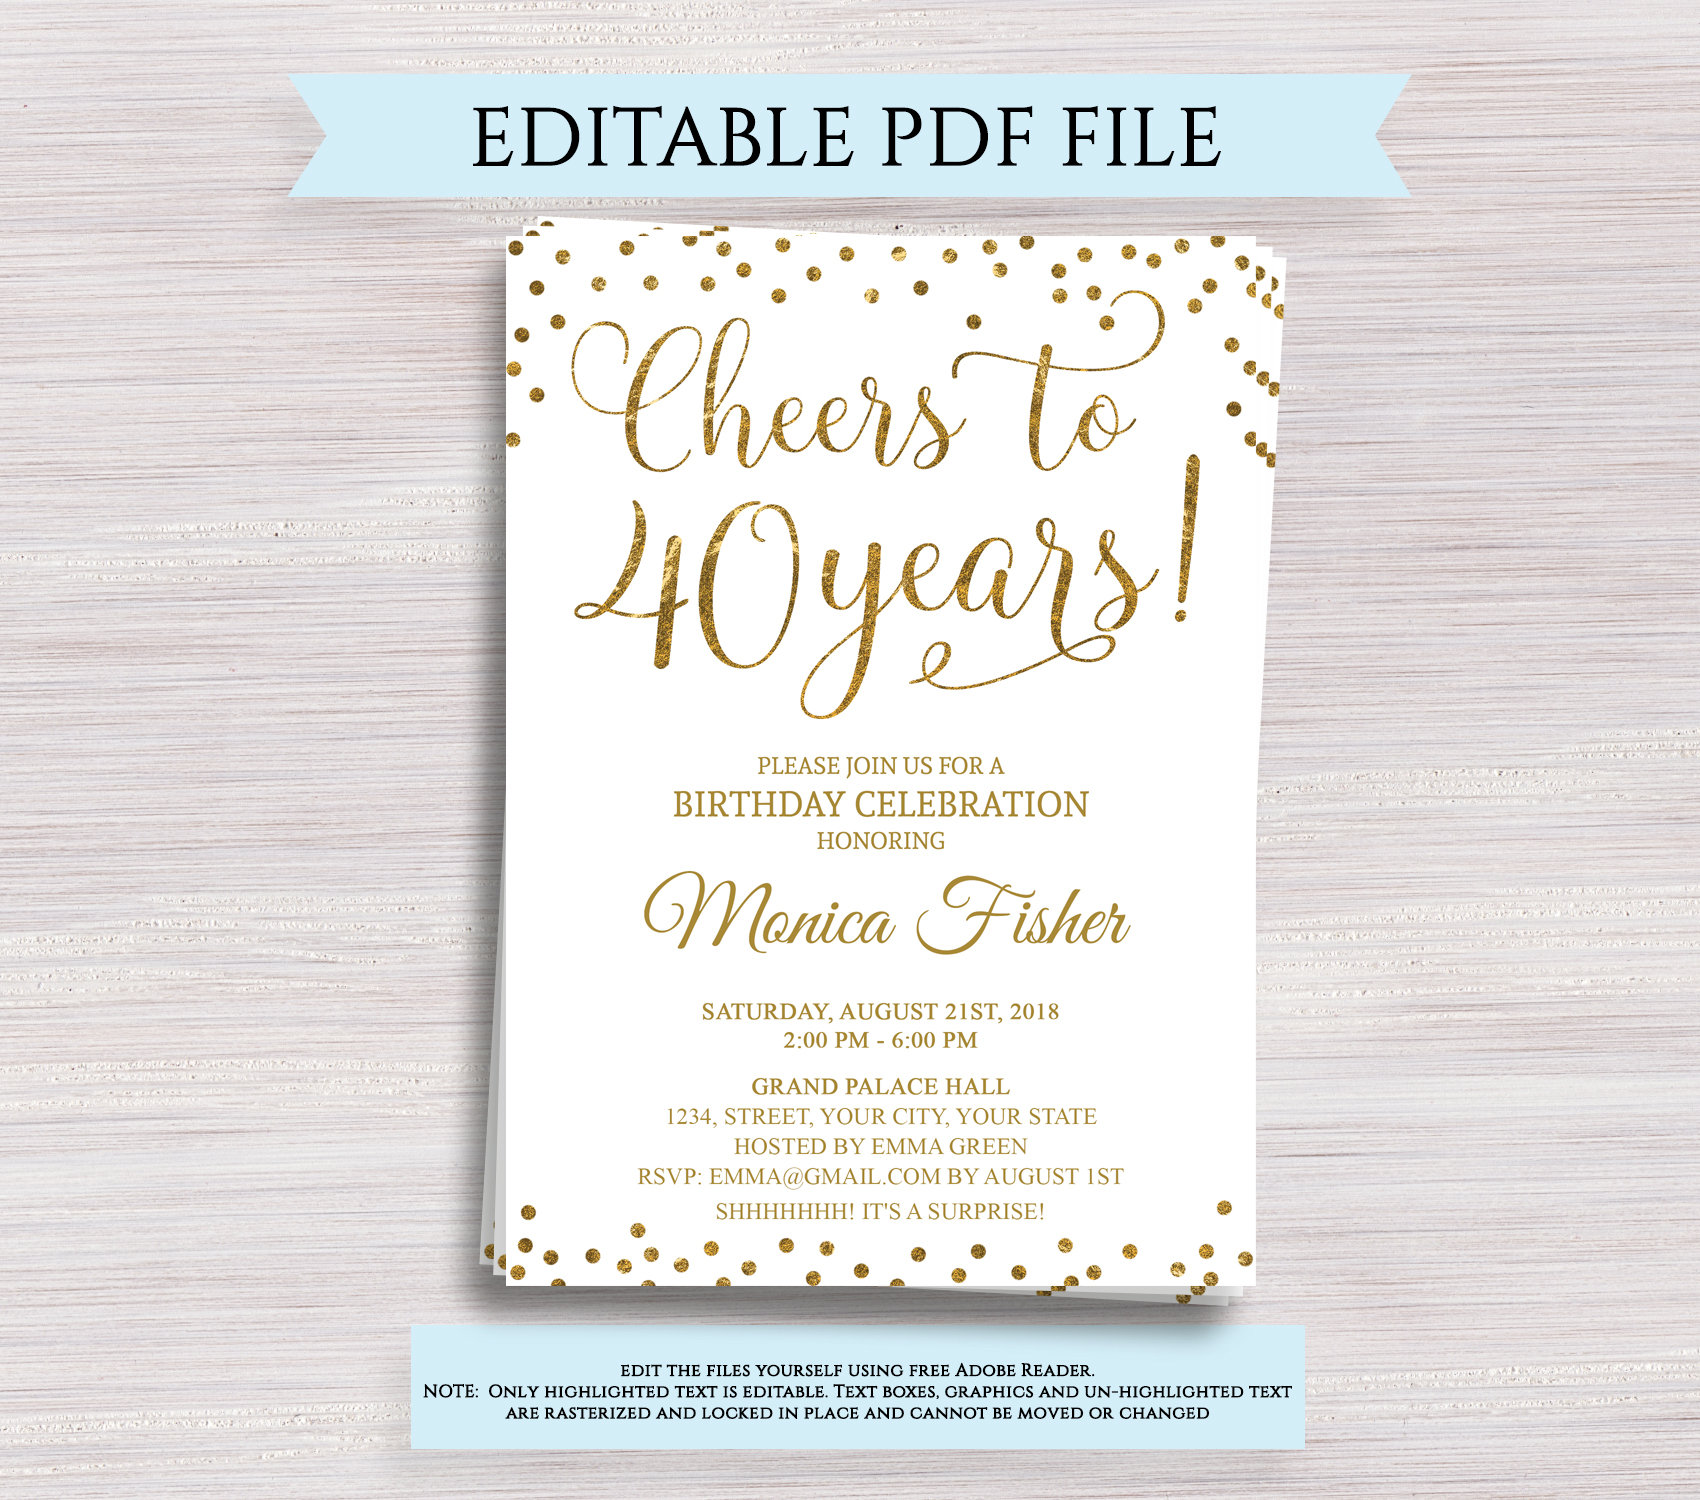 Editable 40th Birthday Party Invitation Template Cheers To 40